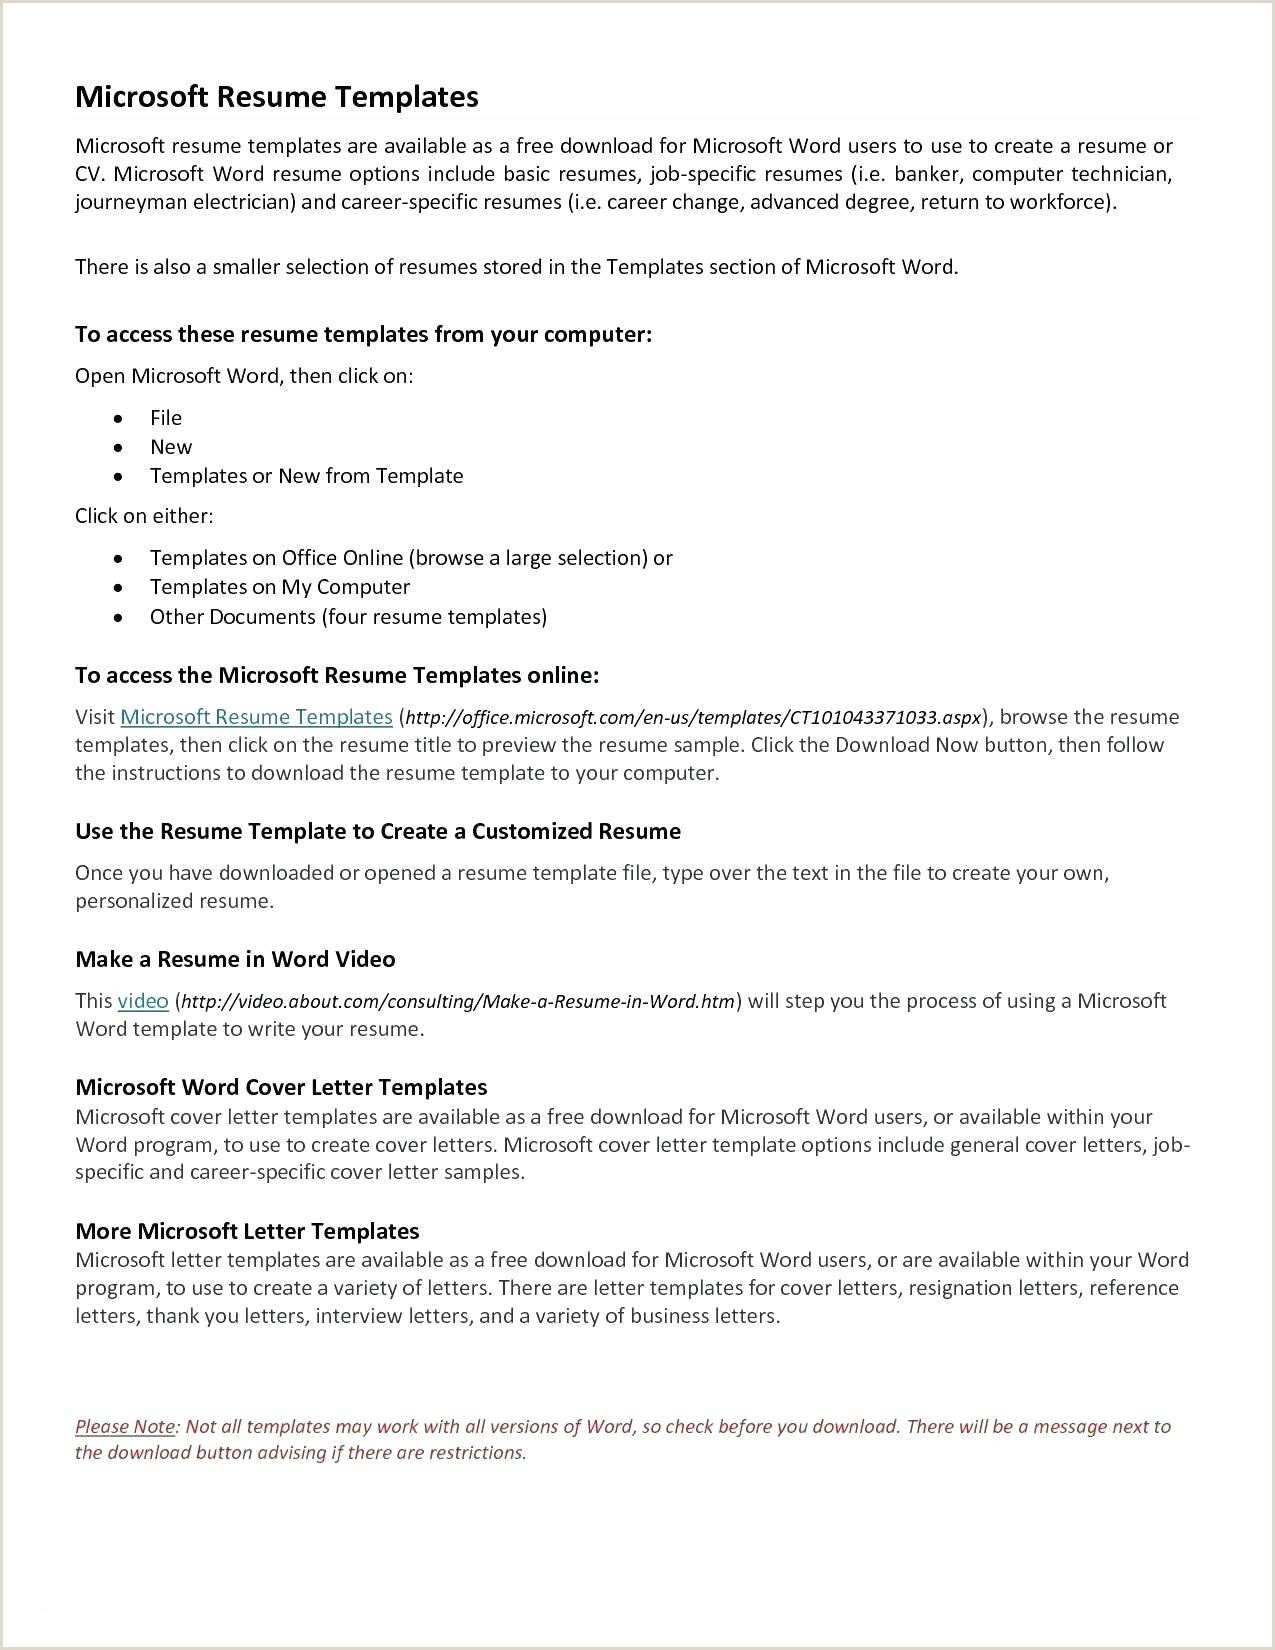 Job Reference Template Word Free Resume Templates for Microsoft Word – Salumguilher